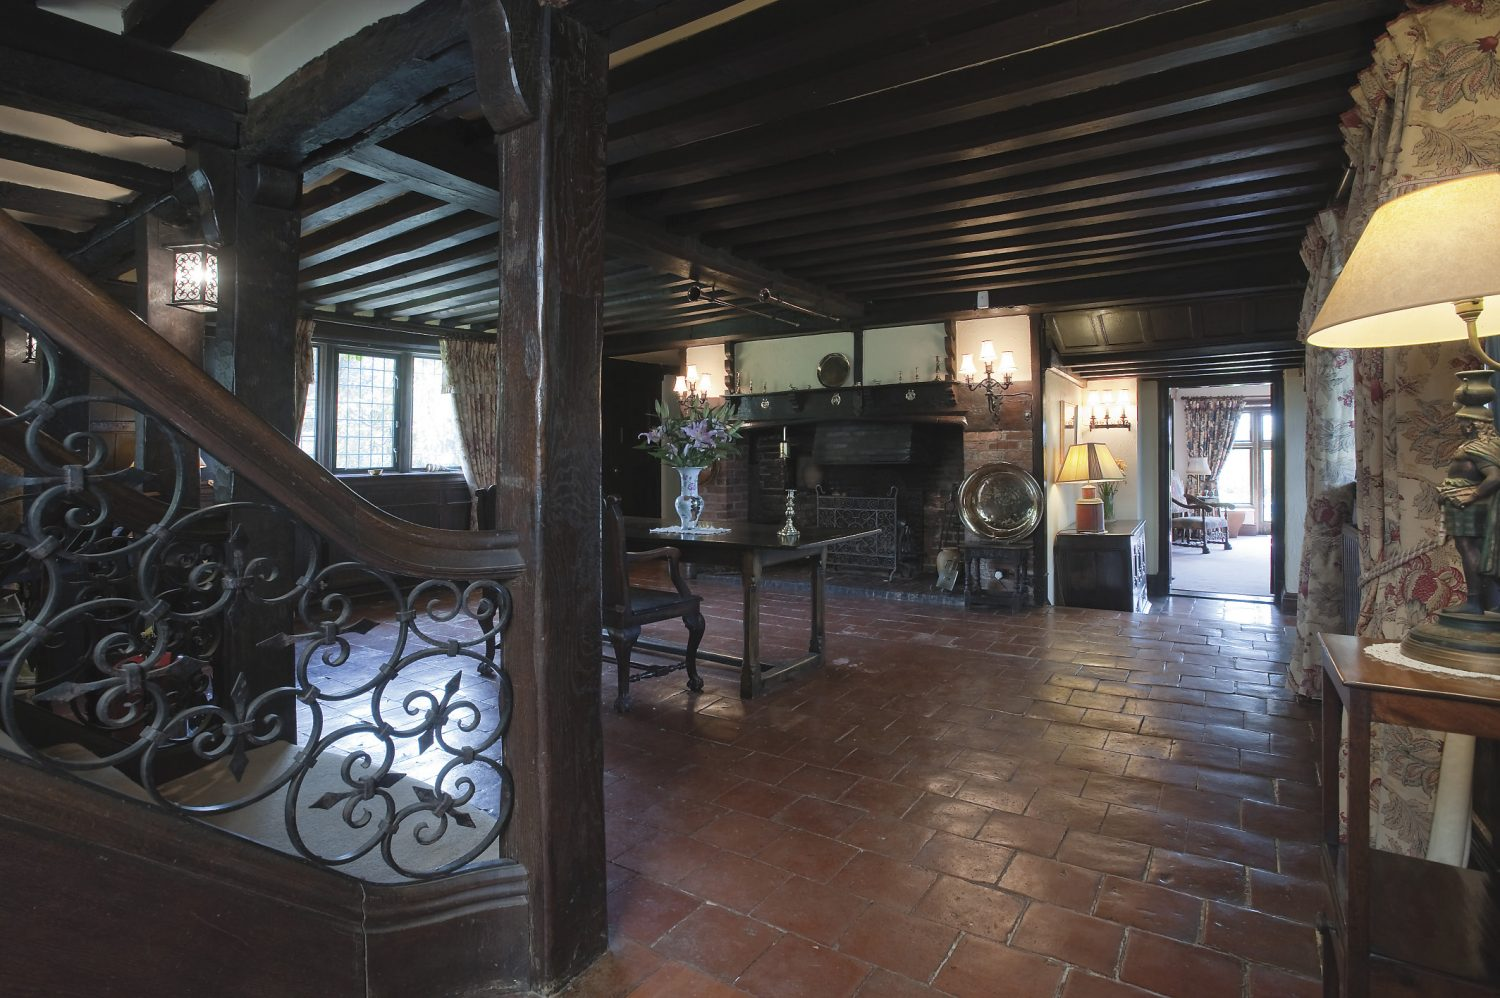 the central reception at the Tudor core of the house